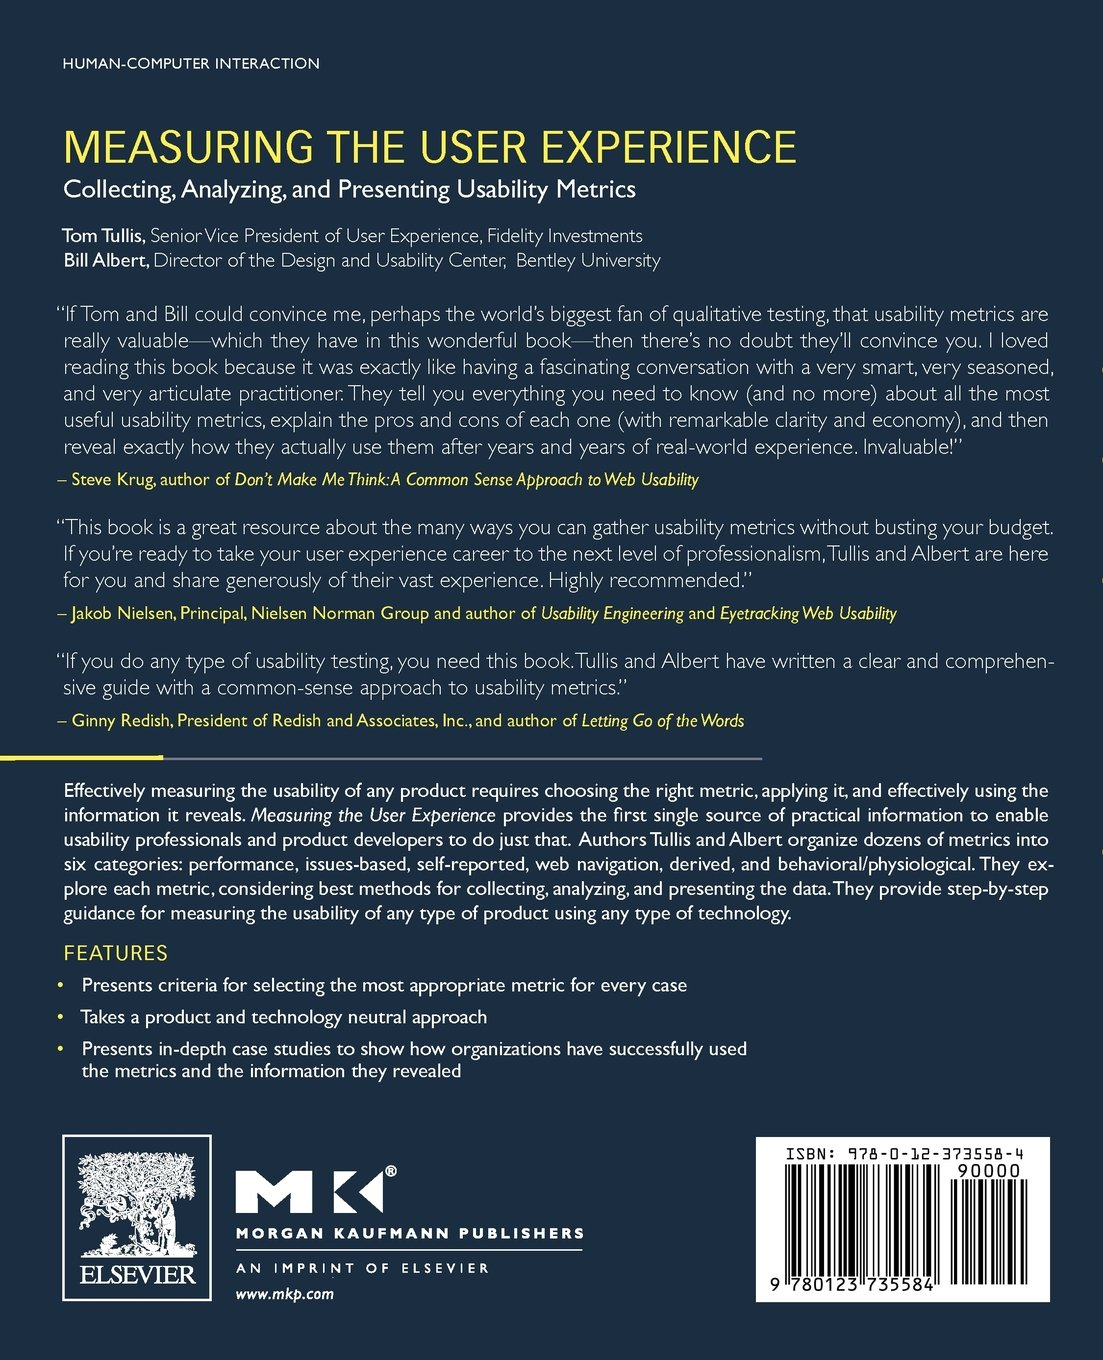 Measuring the User Experience: Collecting, Analyzing, and